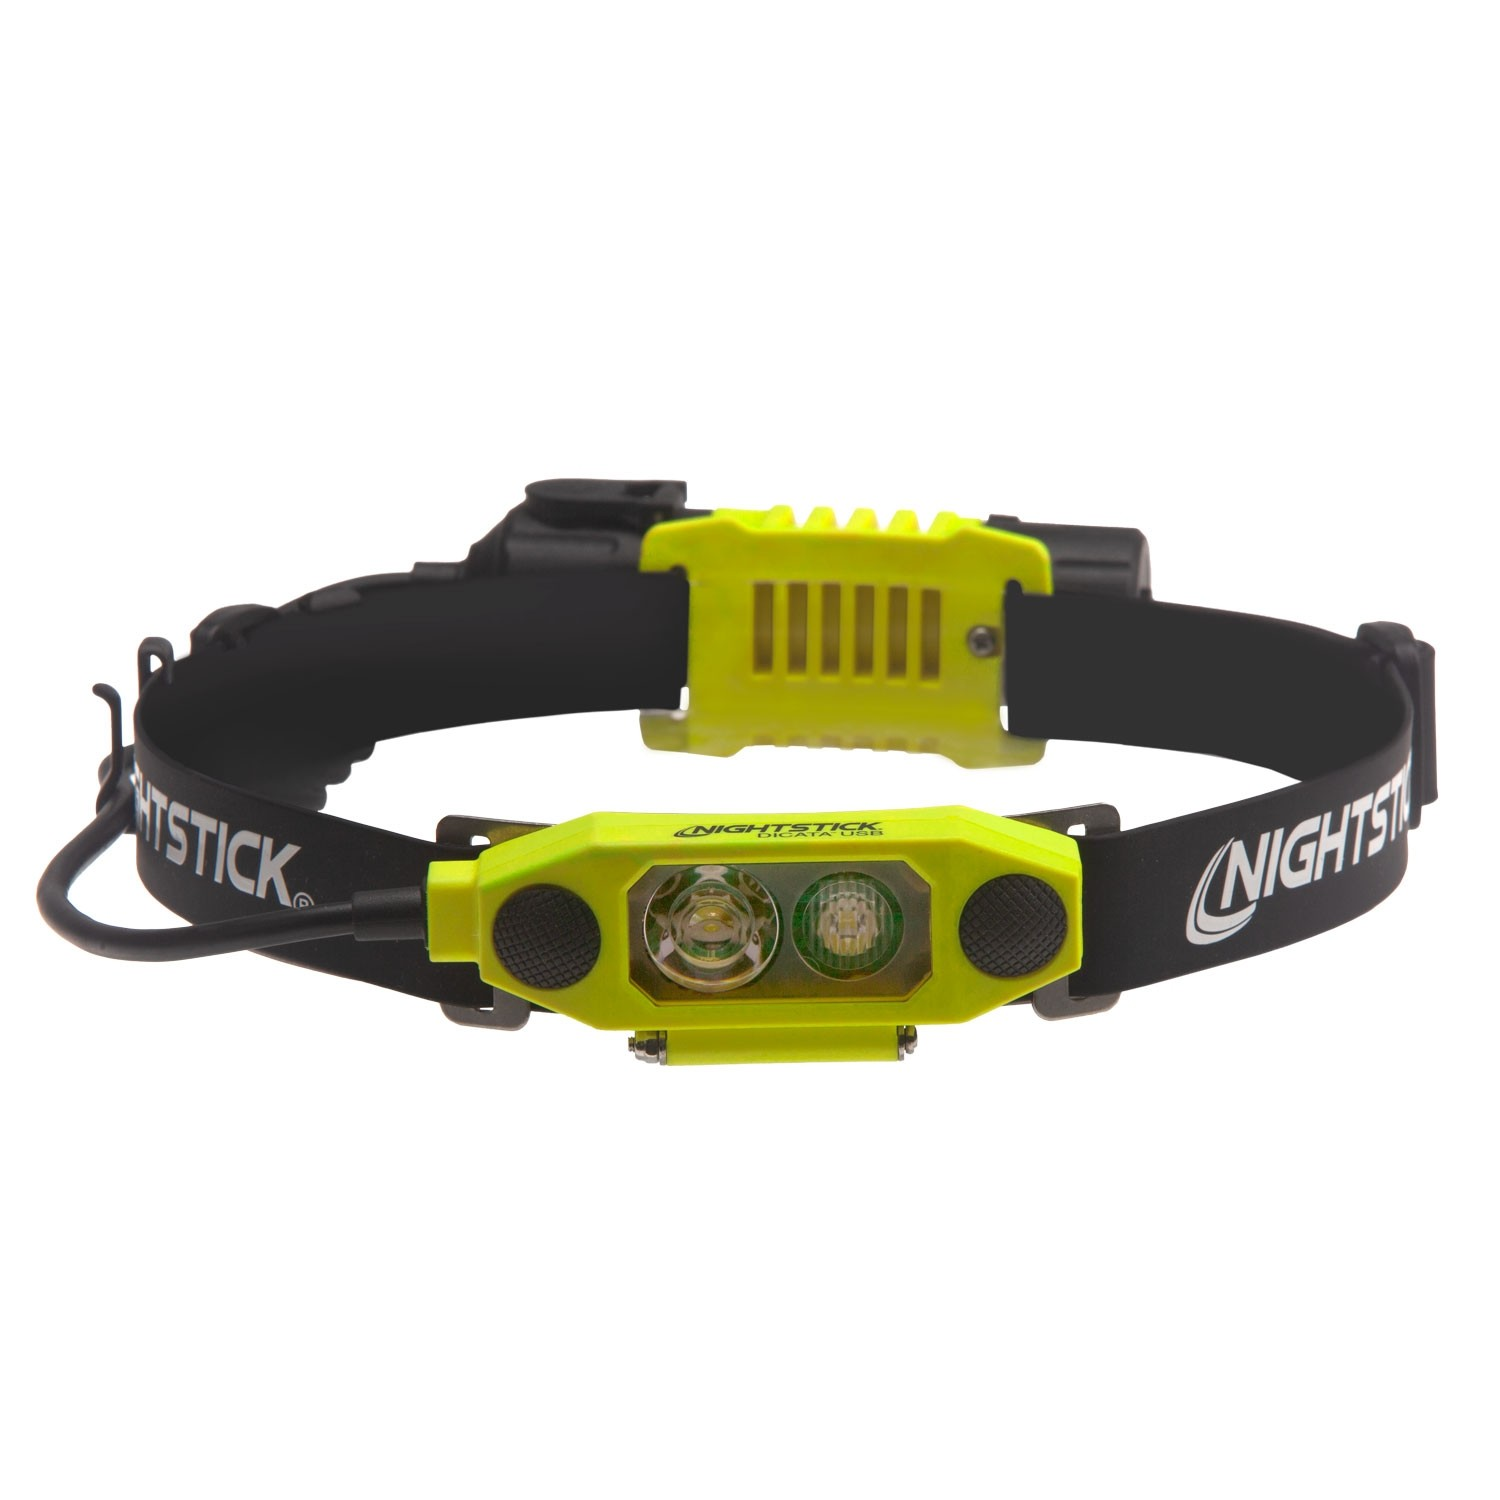 XPR-5462GX X-Series Intrinsically Safe Low-Profile Dual-Light™ Headlamp - Green | 310 lm | green